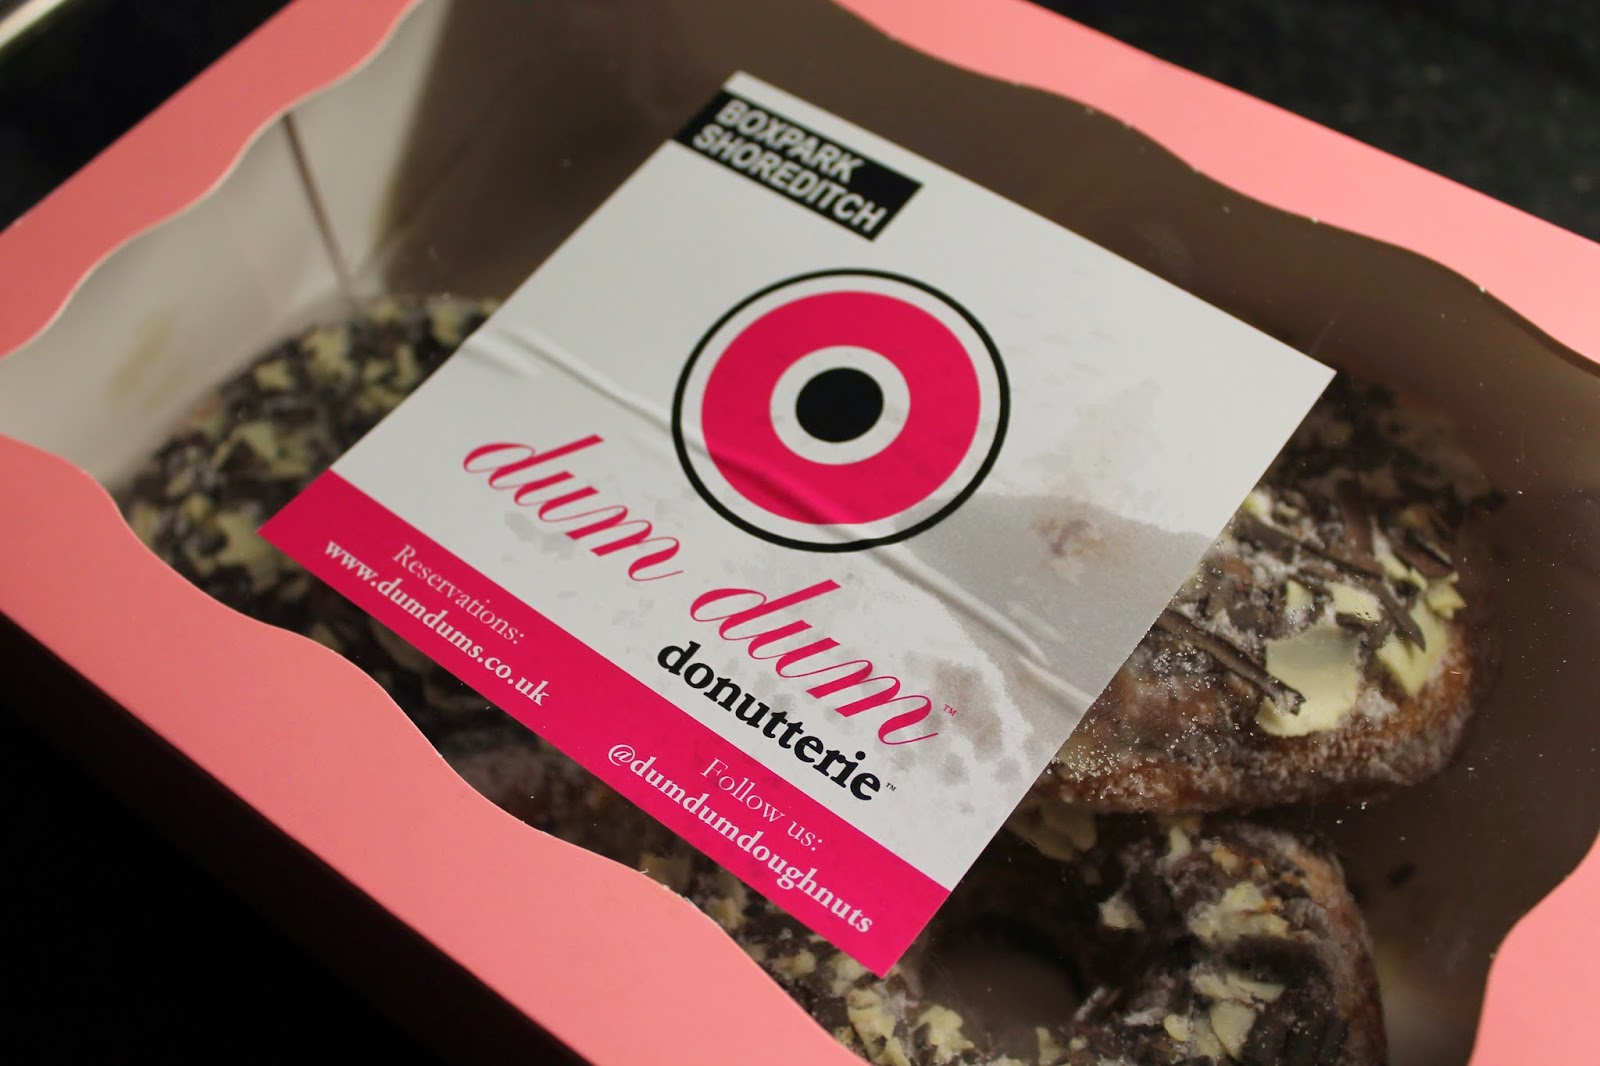 Dum Dum Donutterie - Donuts Doughnuts -Box Park Shoreditch Review